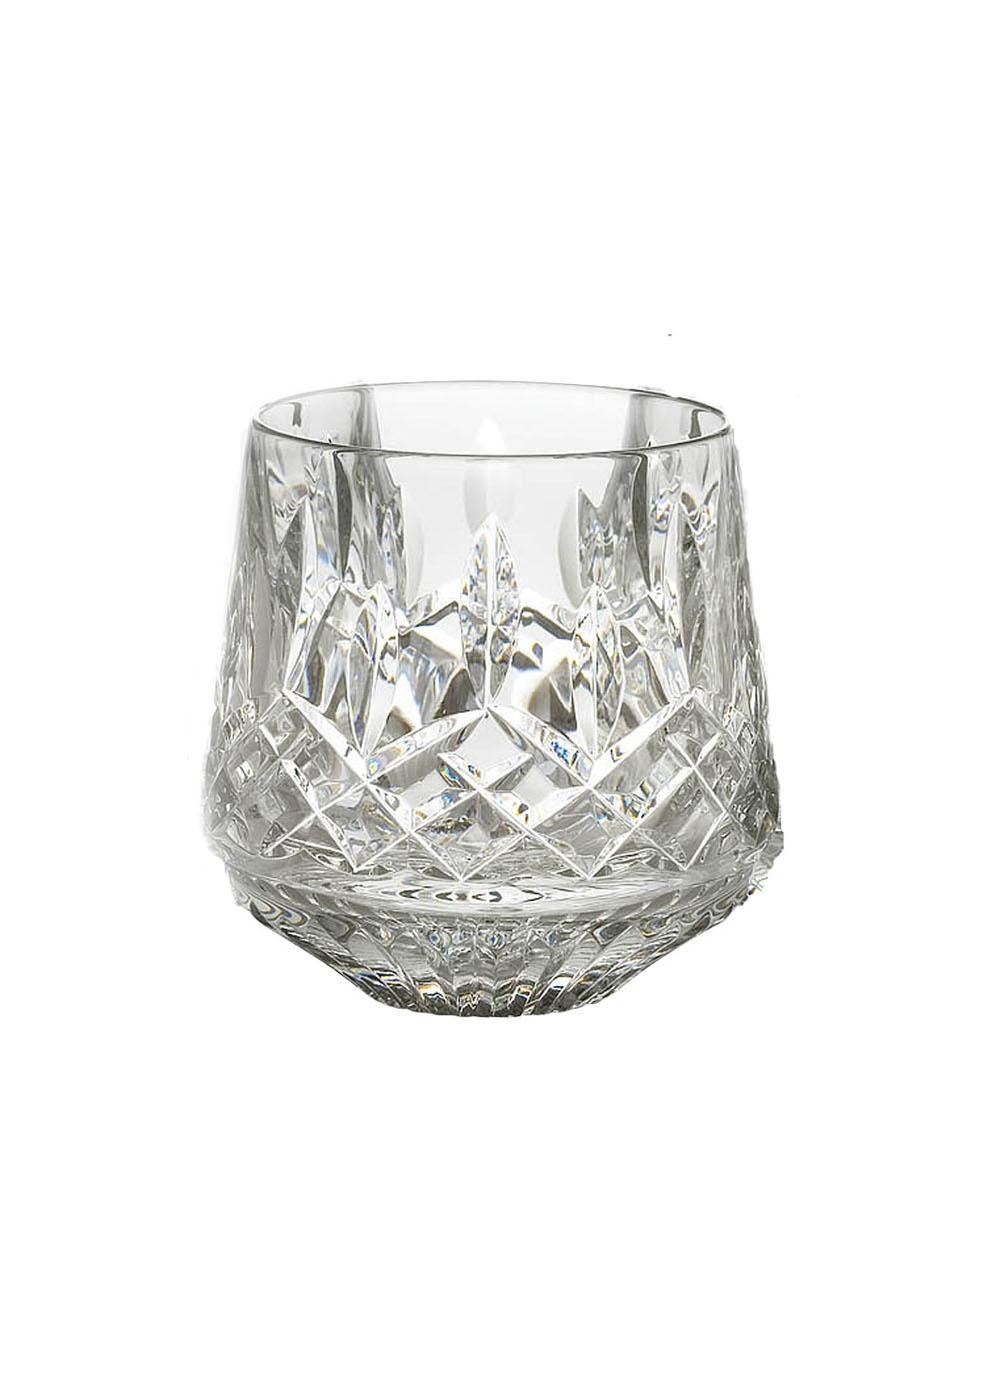 Splendiferous Waterford Ring Holder | Marvellous Monogrammed Ring Holder